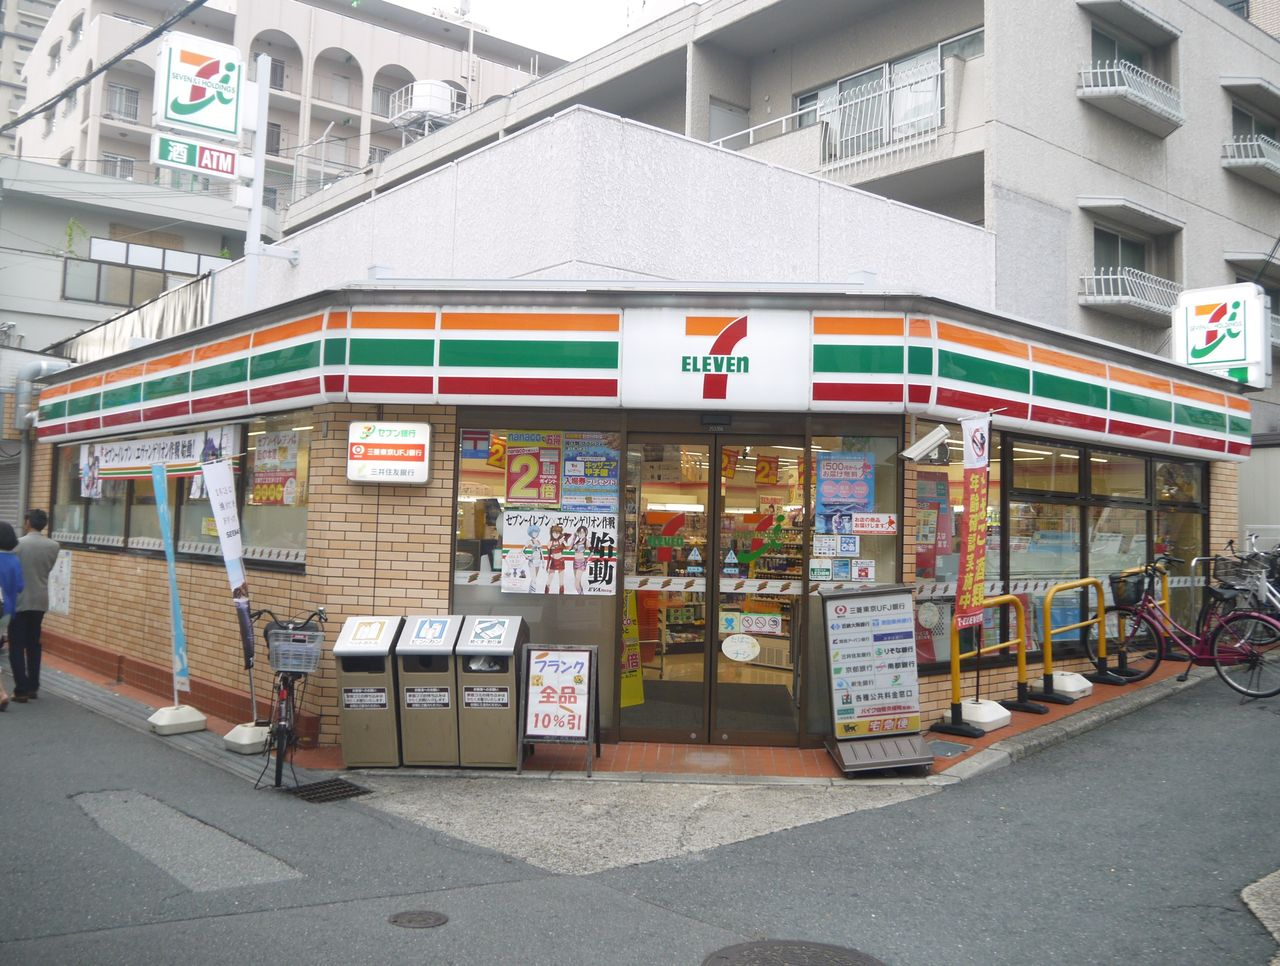 """);document.write("" "");document.write("""");//-->マチコロ寝屋川大阪府寝屋川市の今が分かるサイト"